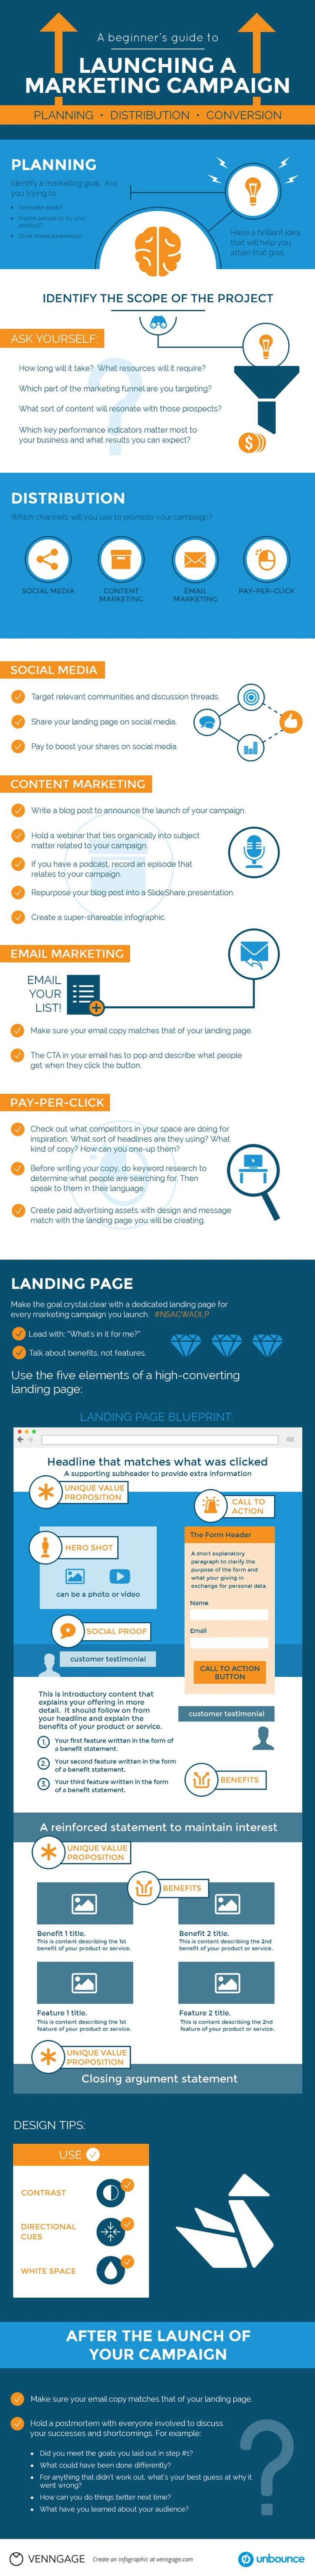 A Beginner's Guide to Launching a Successful Marketing Campaign - #infographic